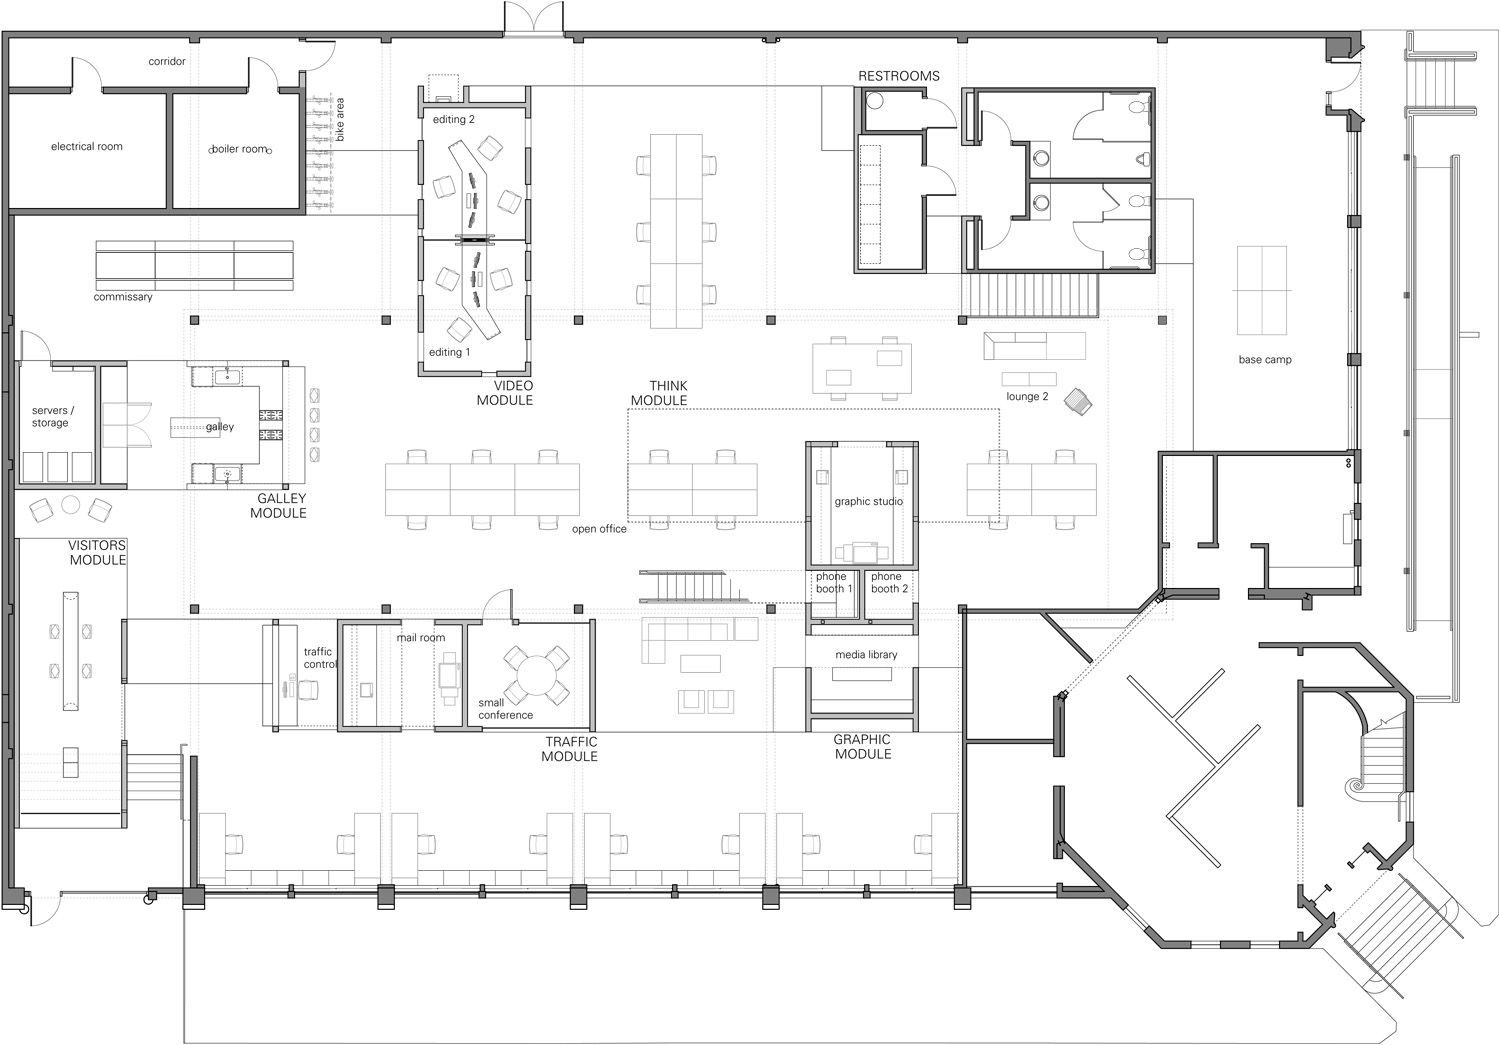 north skylab architecture best office floor plan ideas